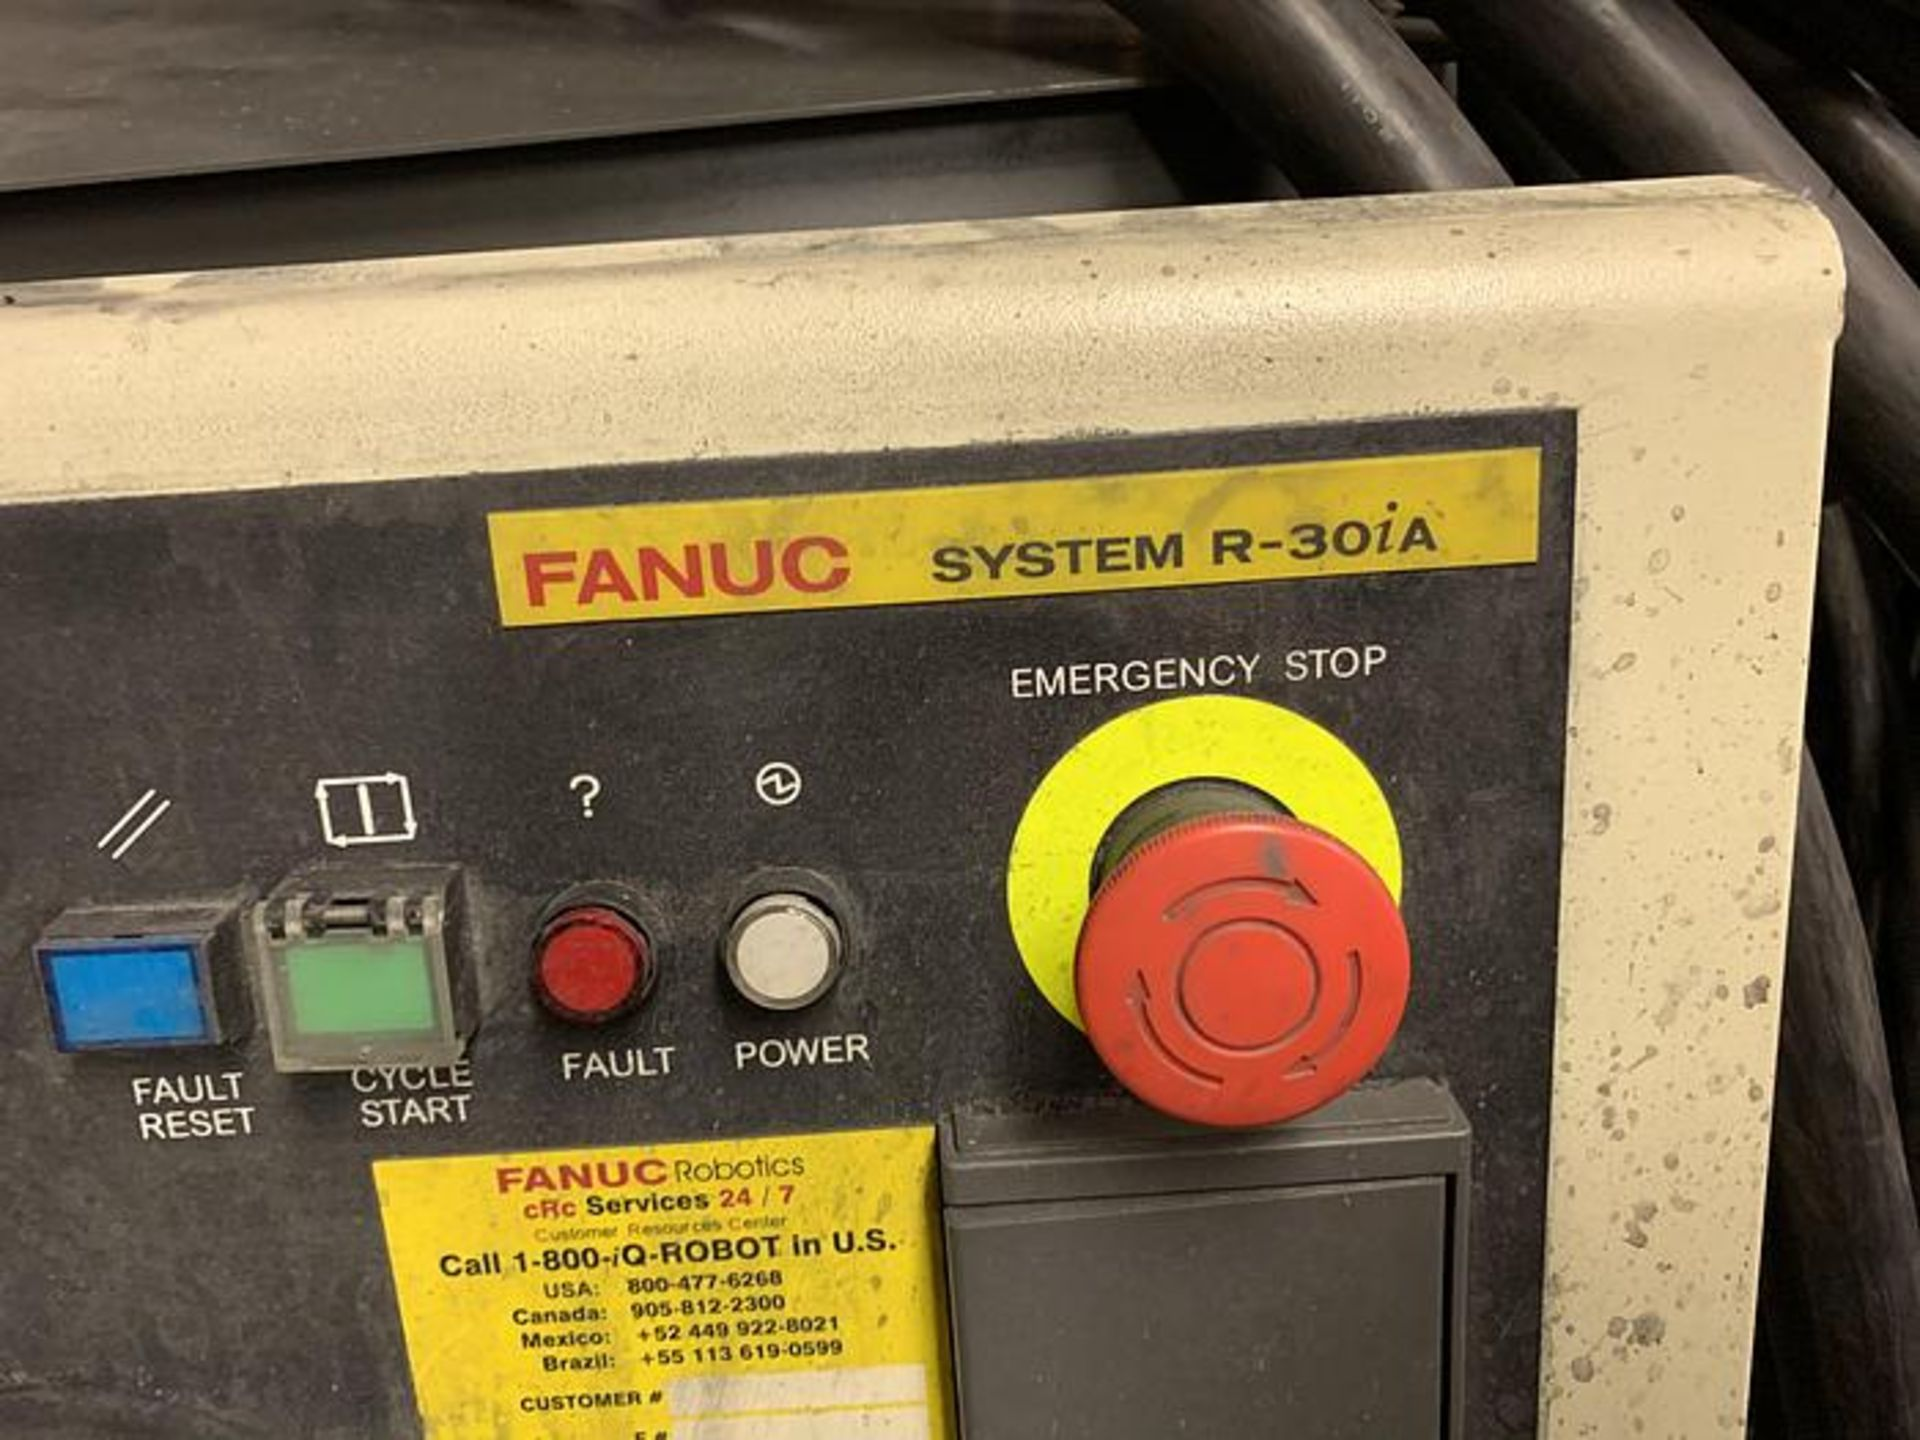 FANUC M900iA/350 6 AXIS ROBOT WITH R30iA CONTROLLER MACHINE, CABLES & TEACH SN F111634, YEAR 2011 - Image 8 of 13